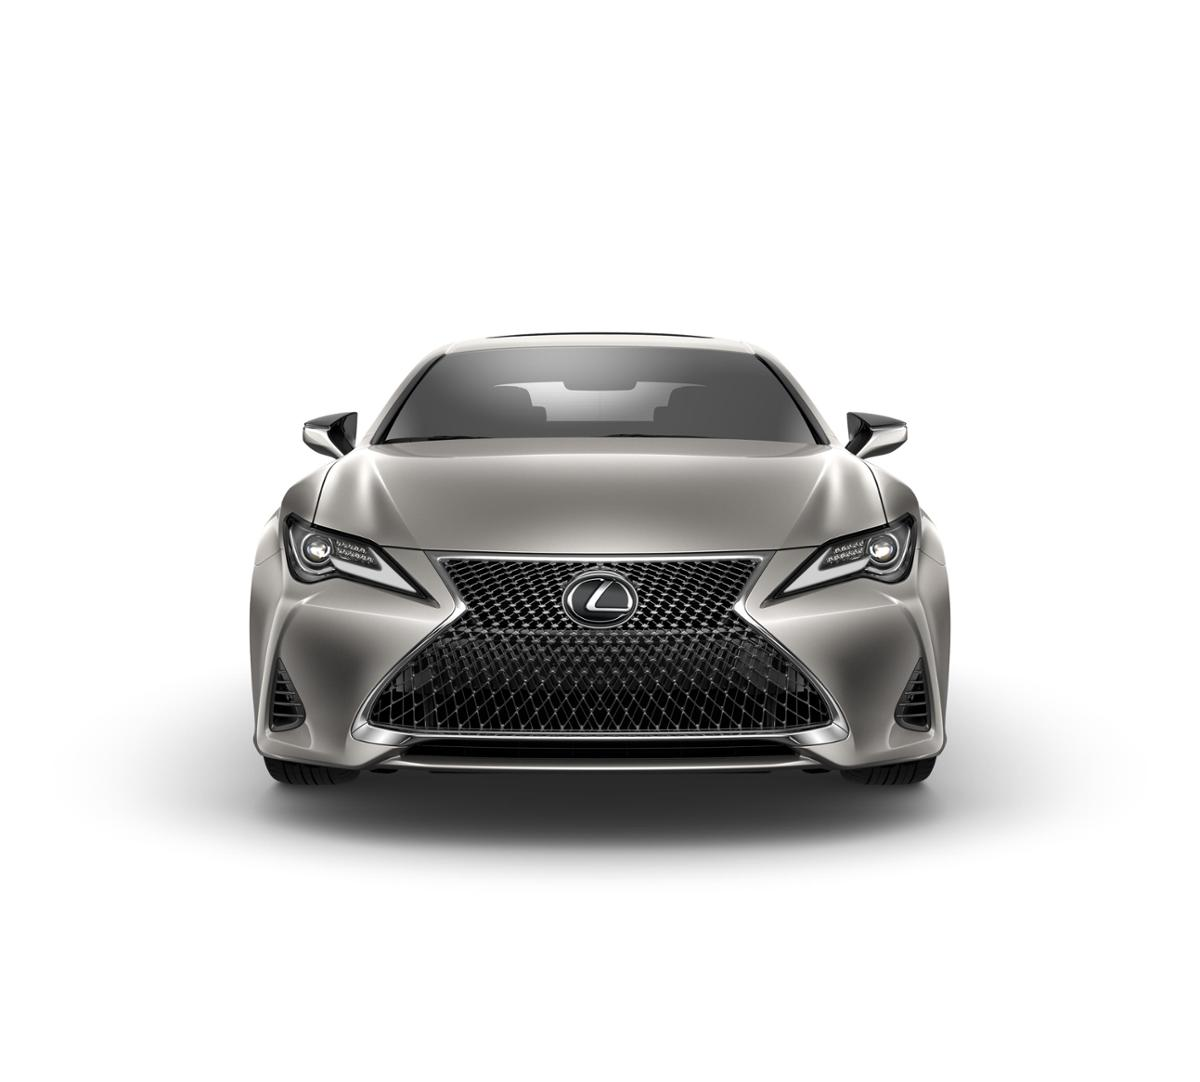 2019 Lexus RC 350 Vehicle Photo in Santa Monica, CA 90404